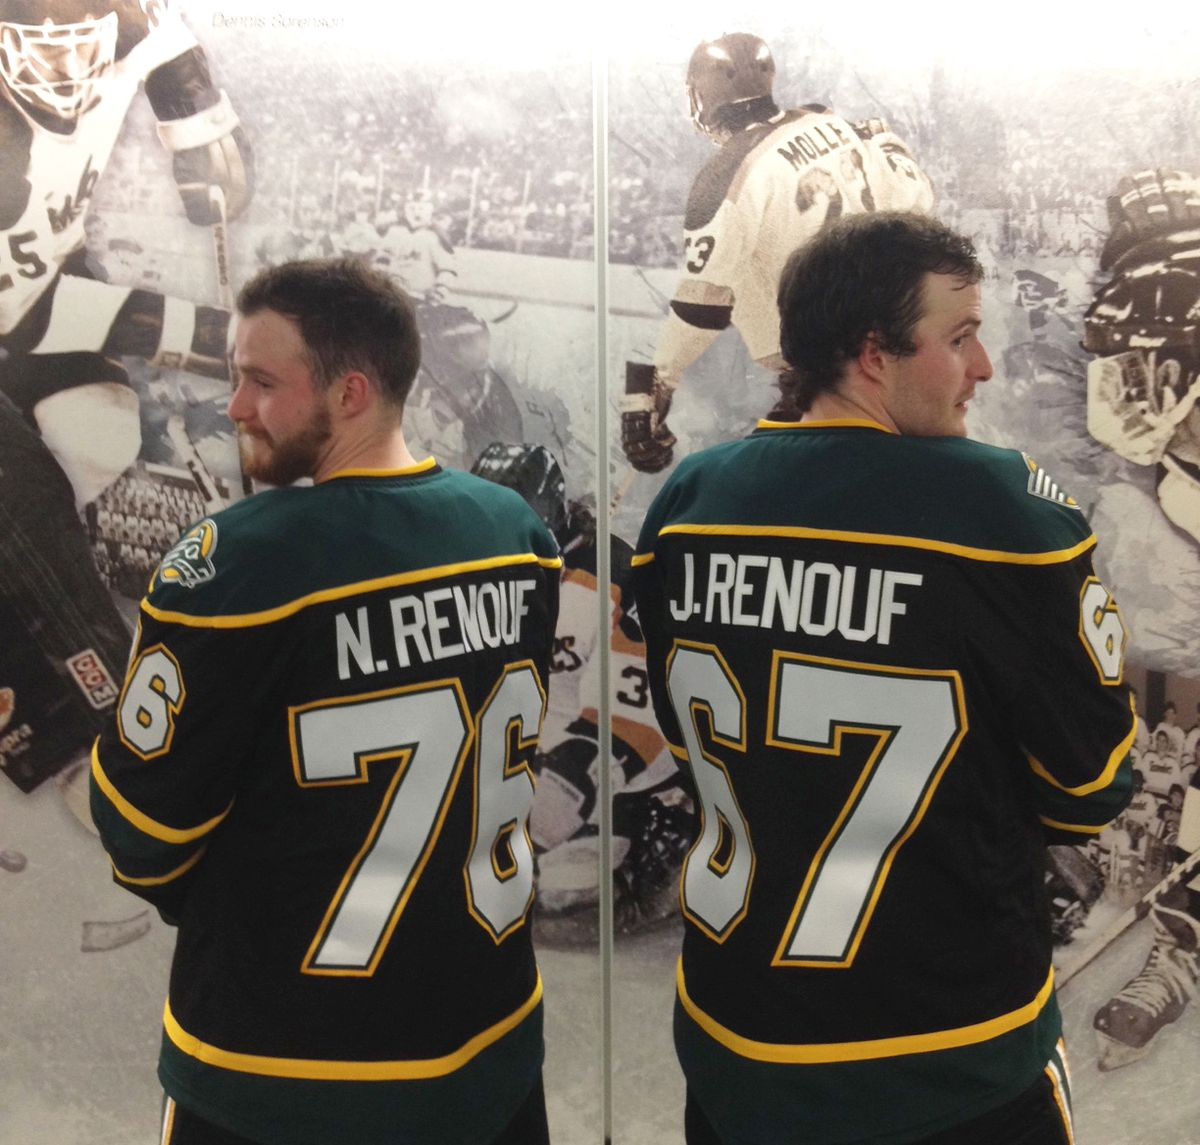 Sophomore twins Nathan, left, and Jonah Renouf are among several UAA hockey players who have changed jersey numbers for the upcoming season. (Doyle Woody / Alaska Dispatch News)